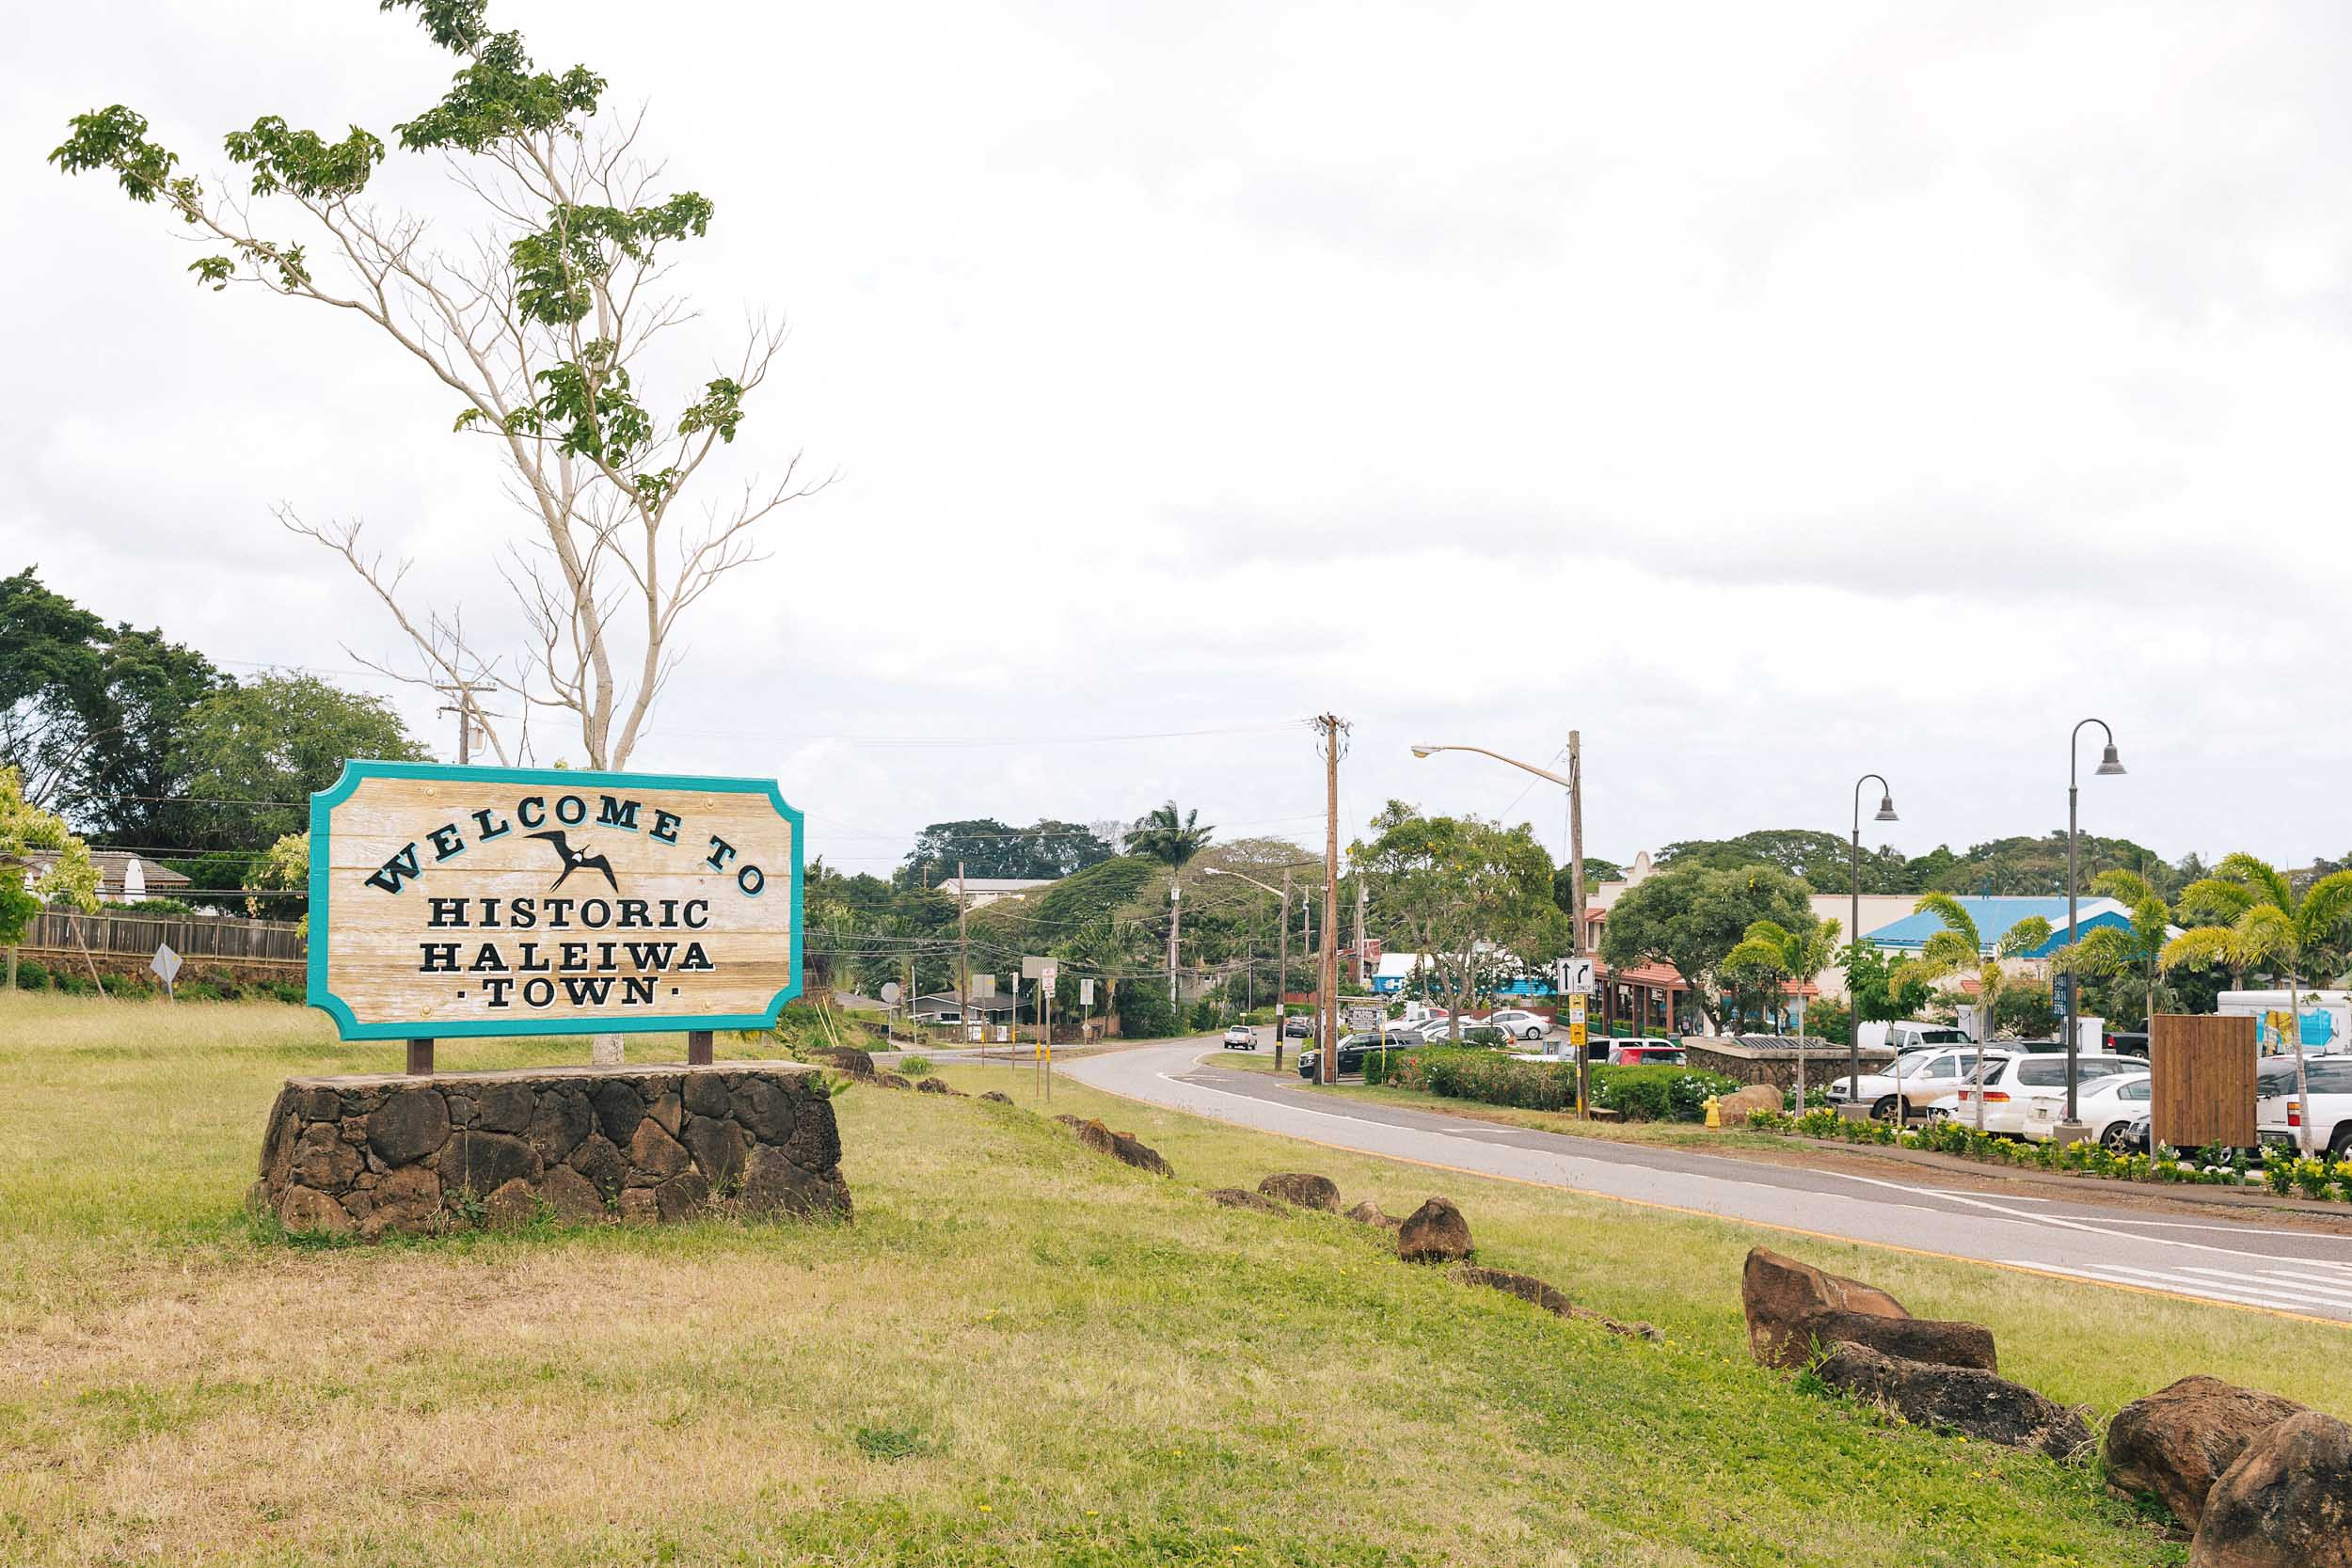 Welcome to historic Haleiwa Town!